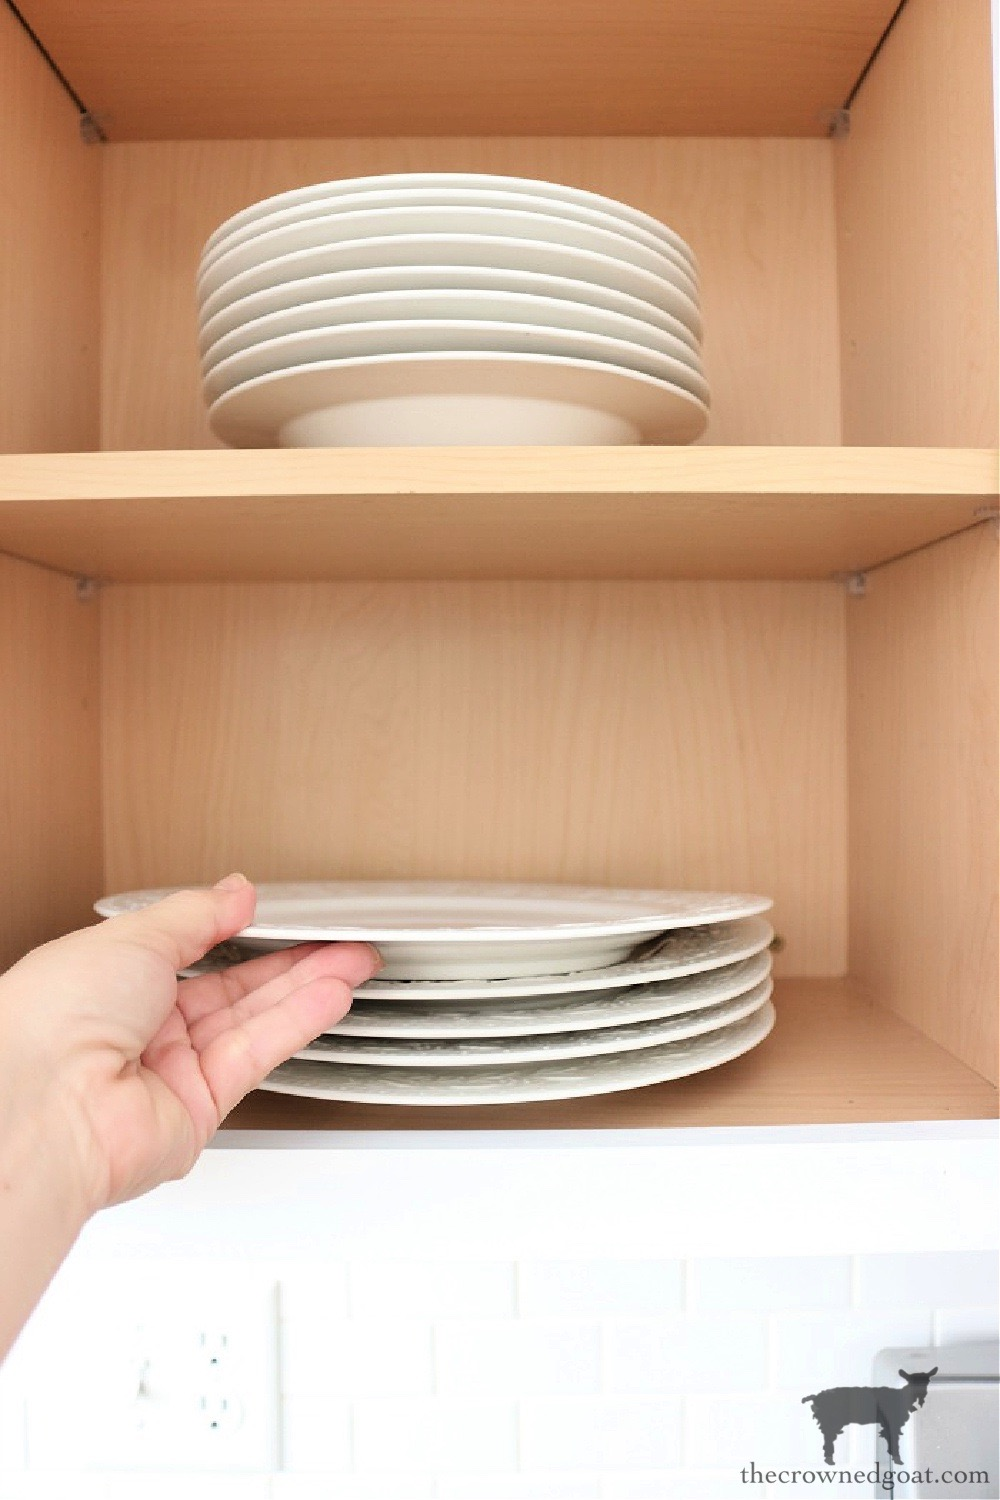 Housekeeping Habits We Practice Every Day-Unload the Dishwasher-The Crowned Goat